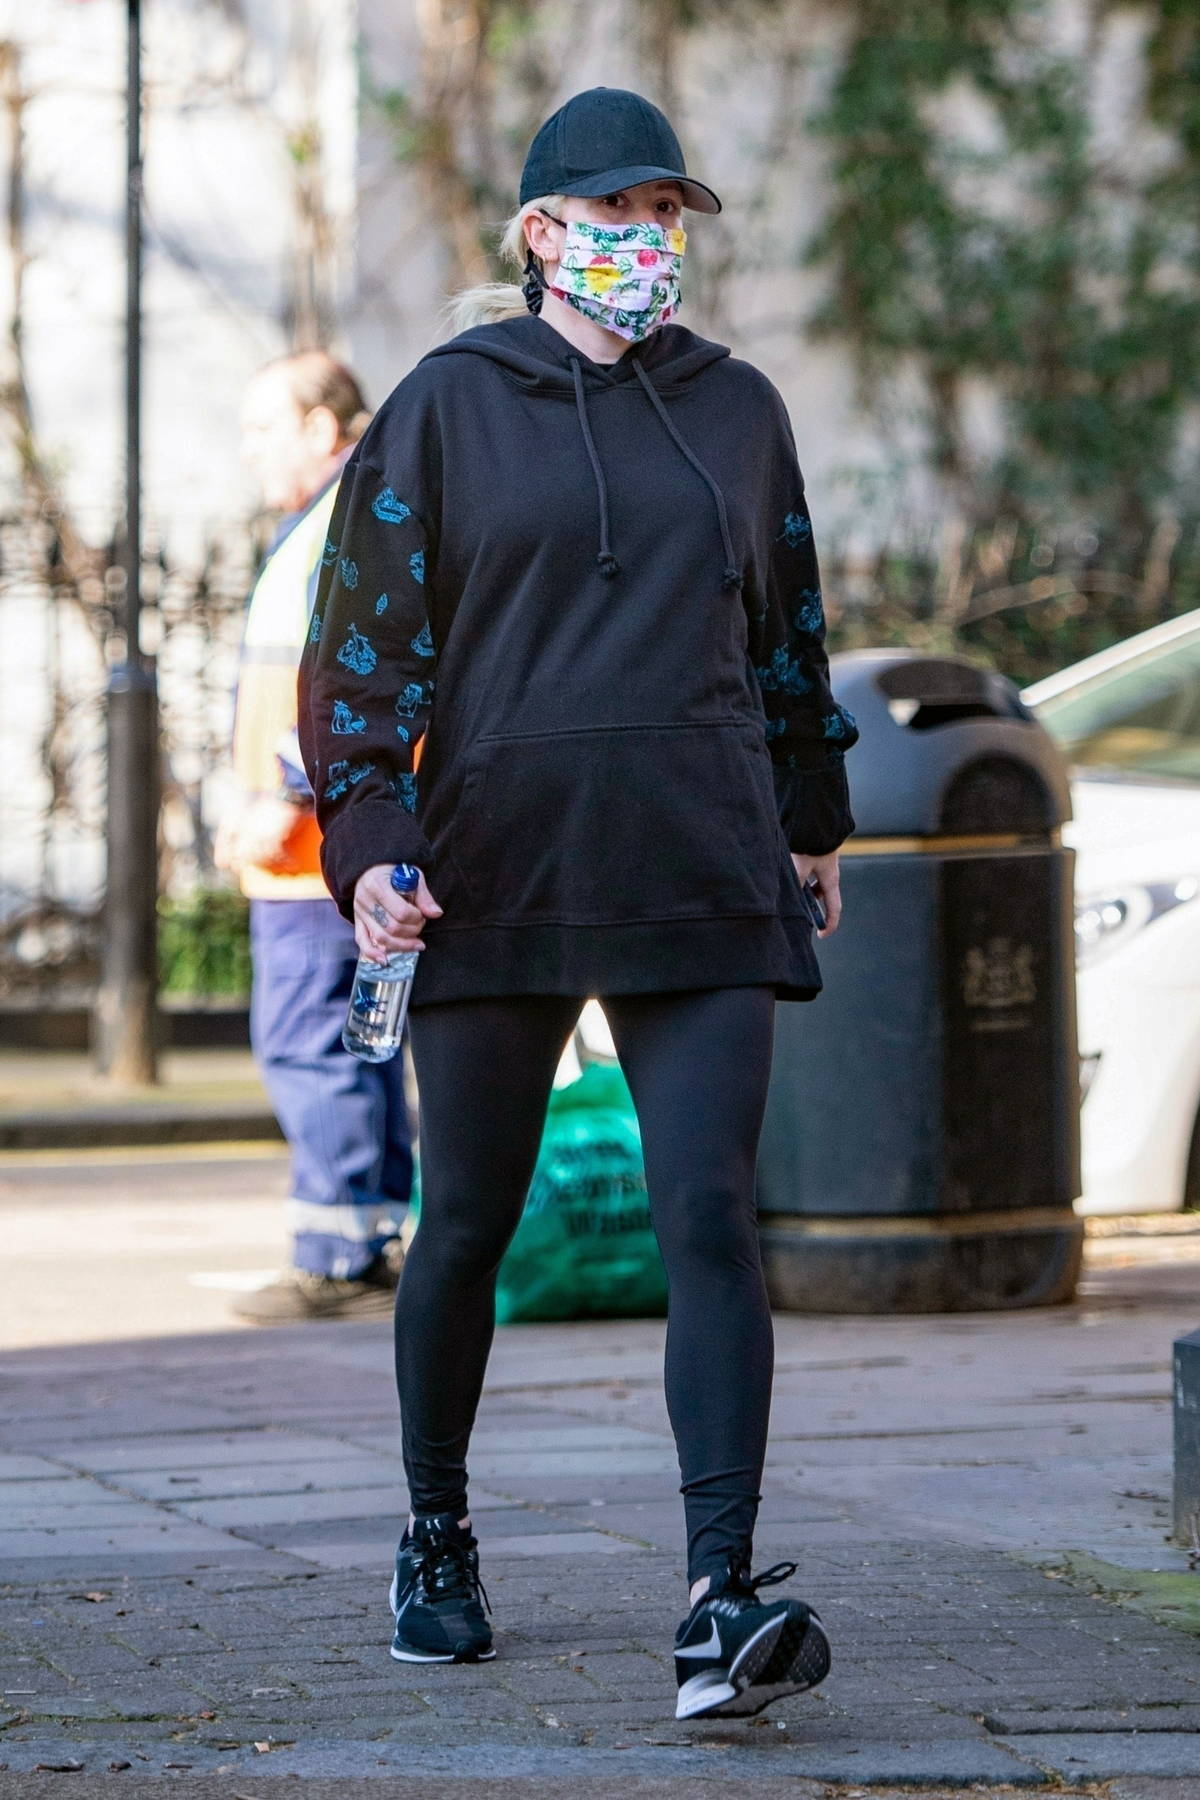 Ellie Goulding shows her baby bump as she steps out for the first time since revealing her 8 months pregnancy, London, UK